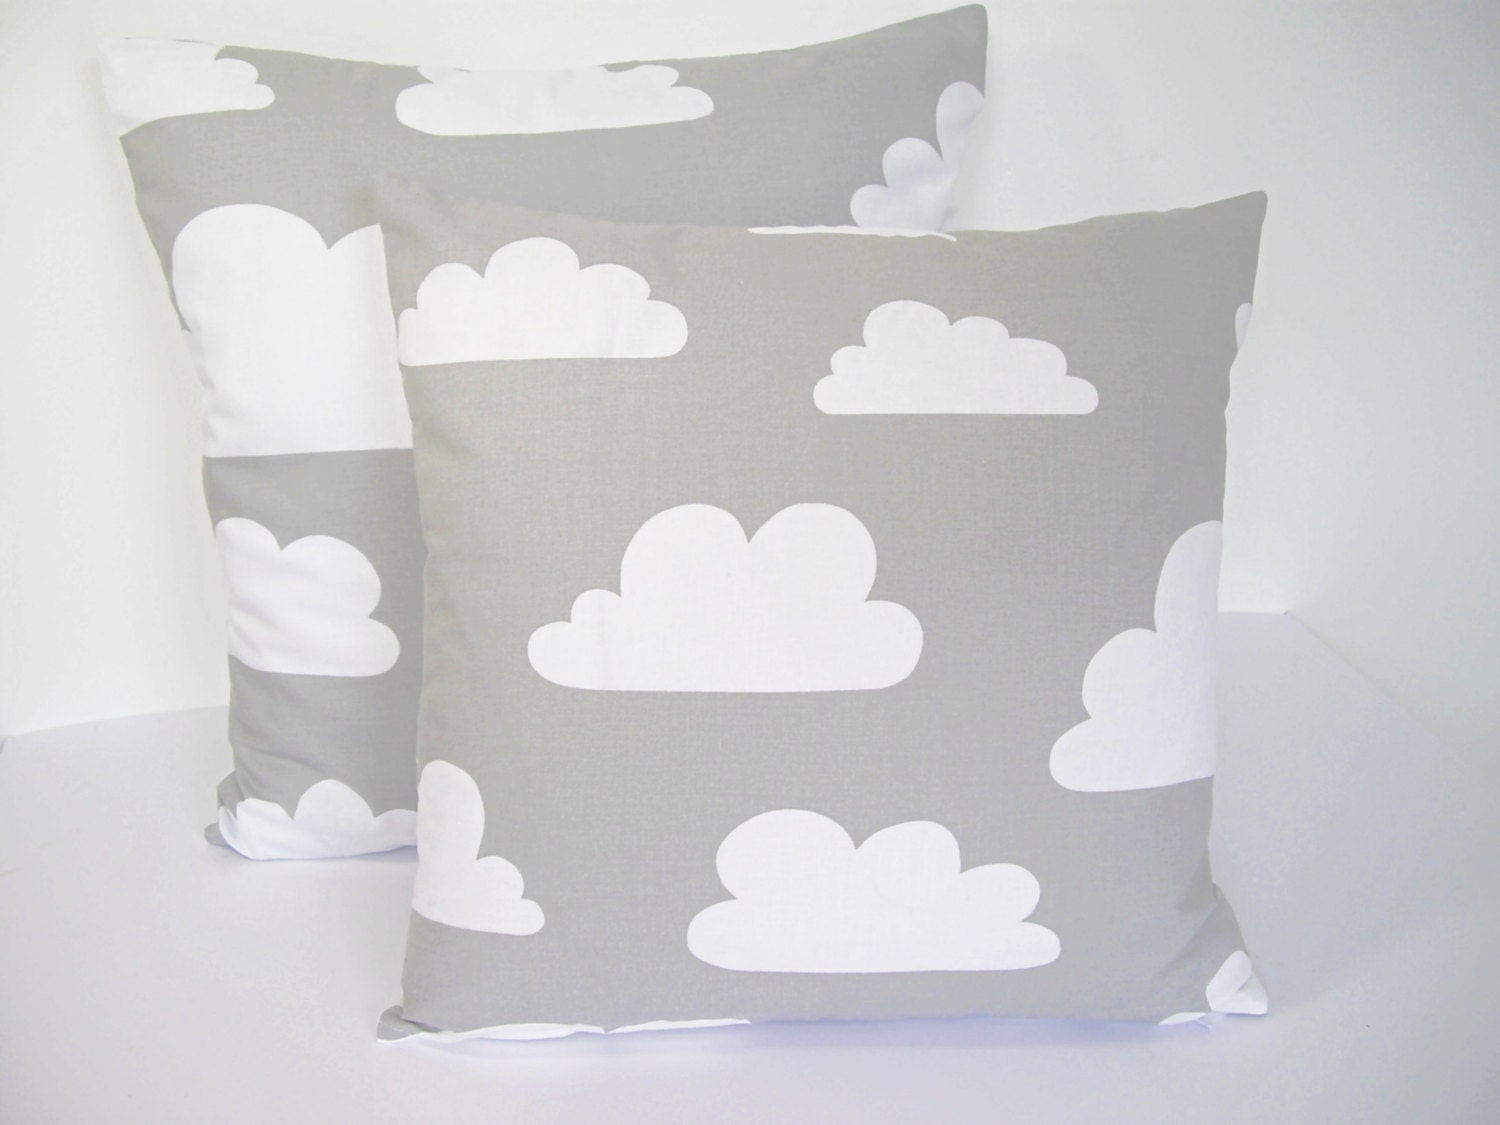 Farg form baby changing table mat grey clouds - Scandinavian Swedish Farg Form Fabric Kids Cushion Cover Grey Clouds